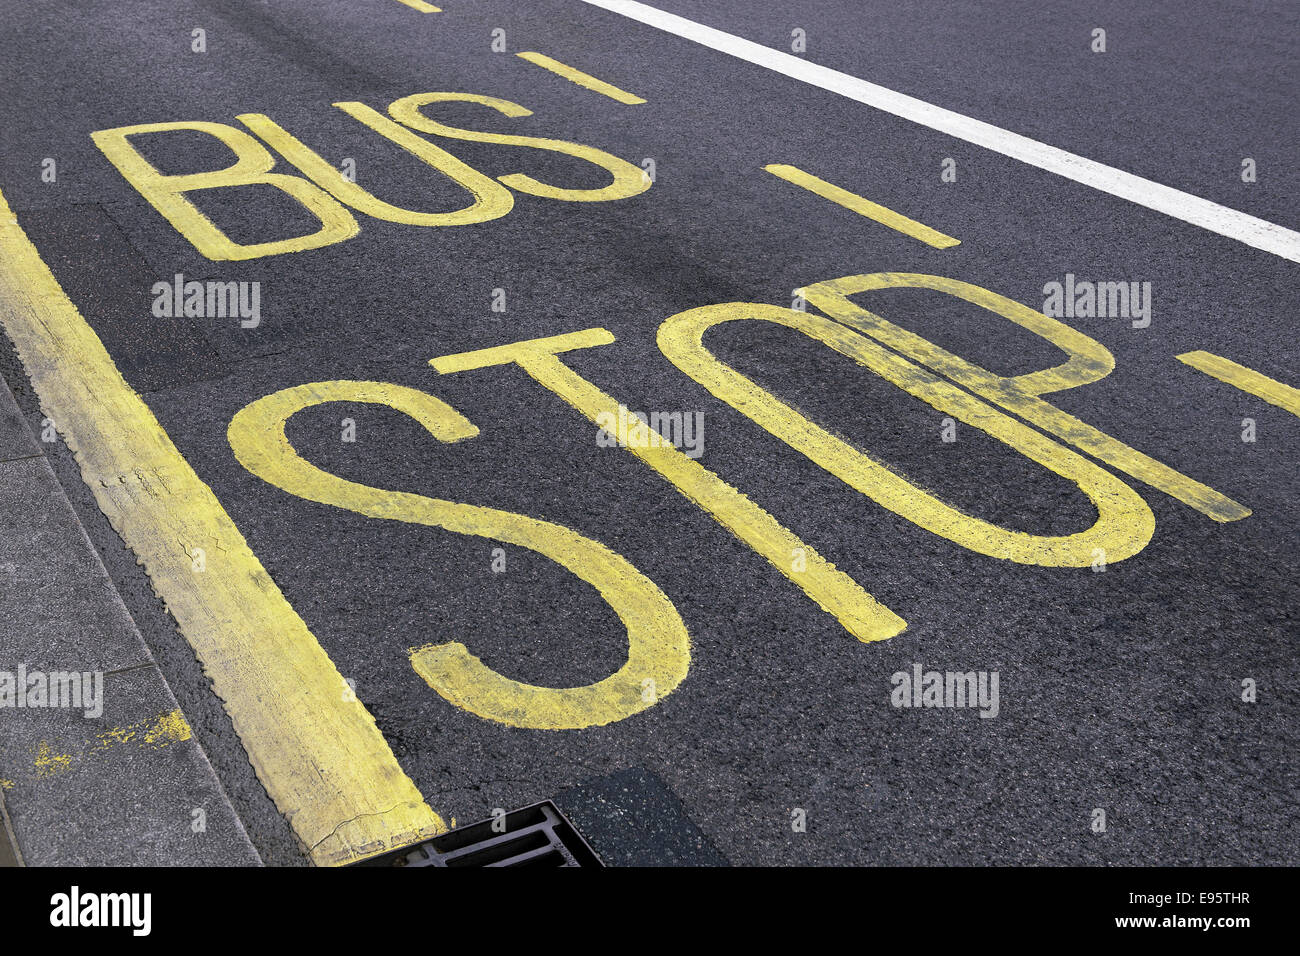 Bus Stop Painted onto a Tarmac Road, London, United Kingdom. - Stock Image